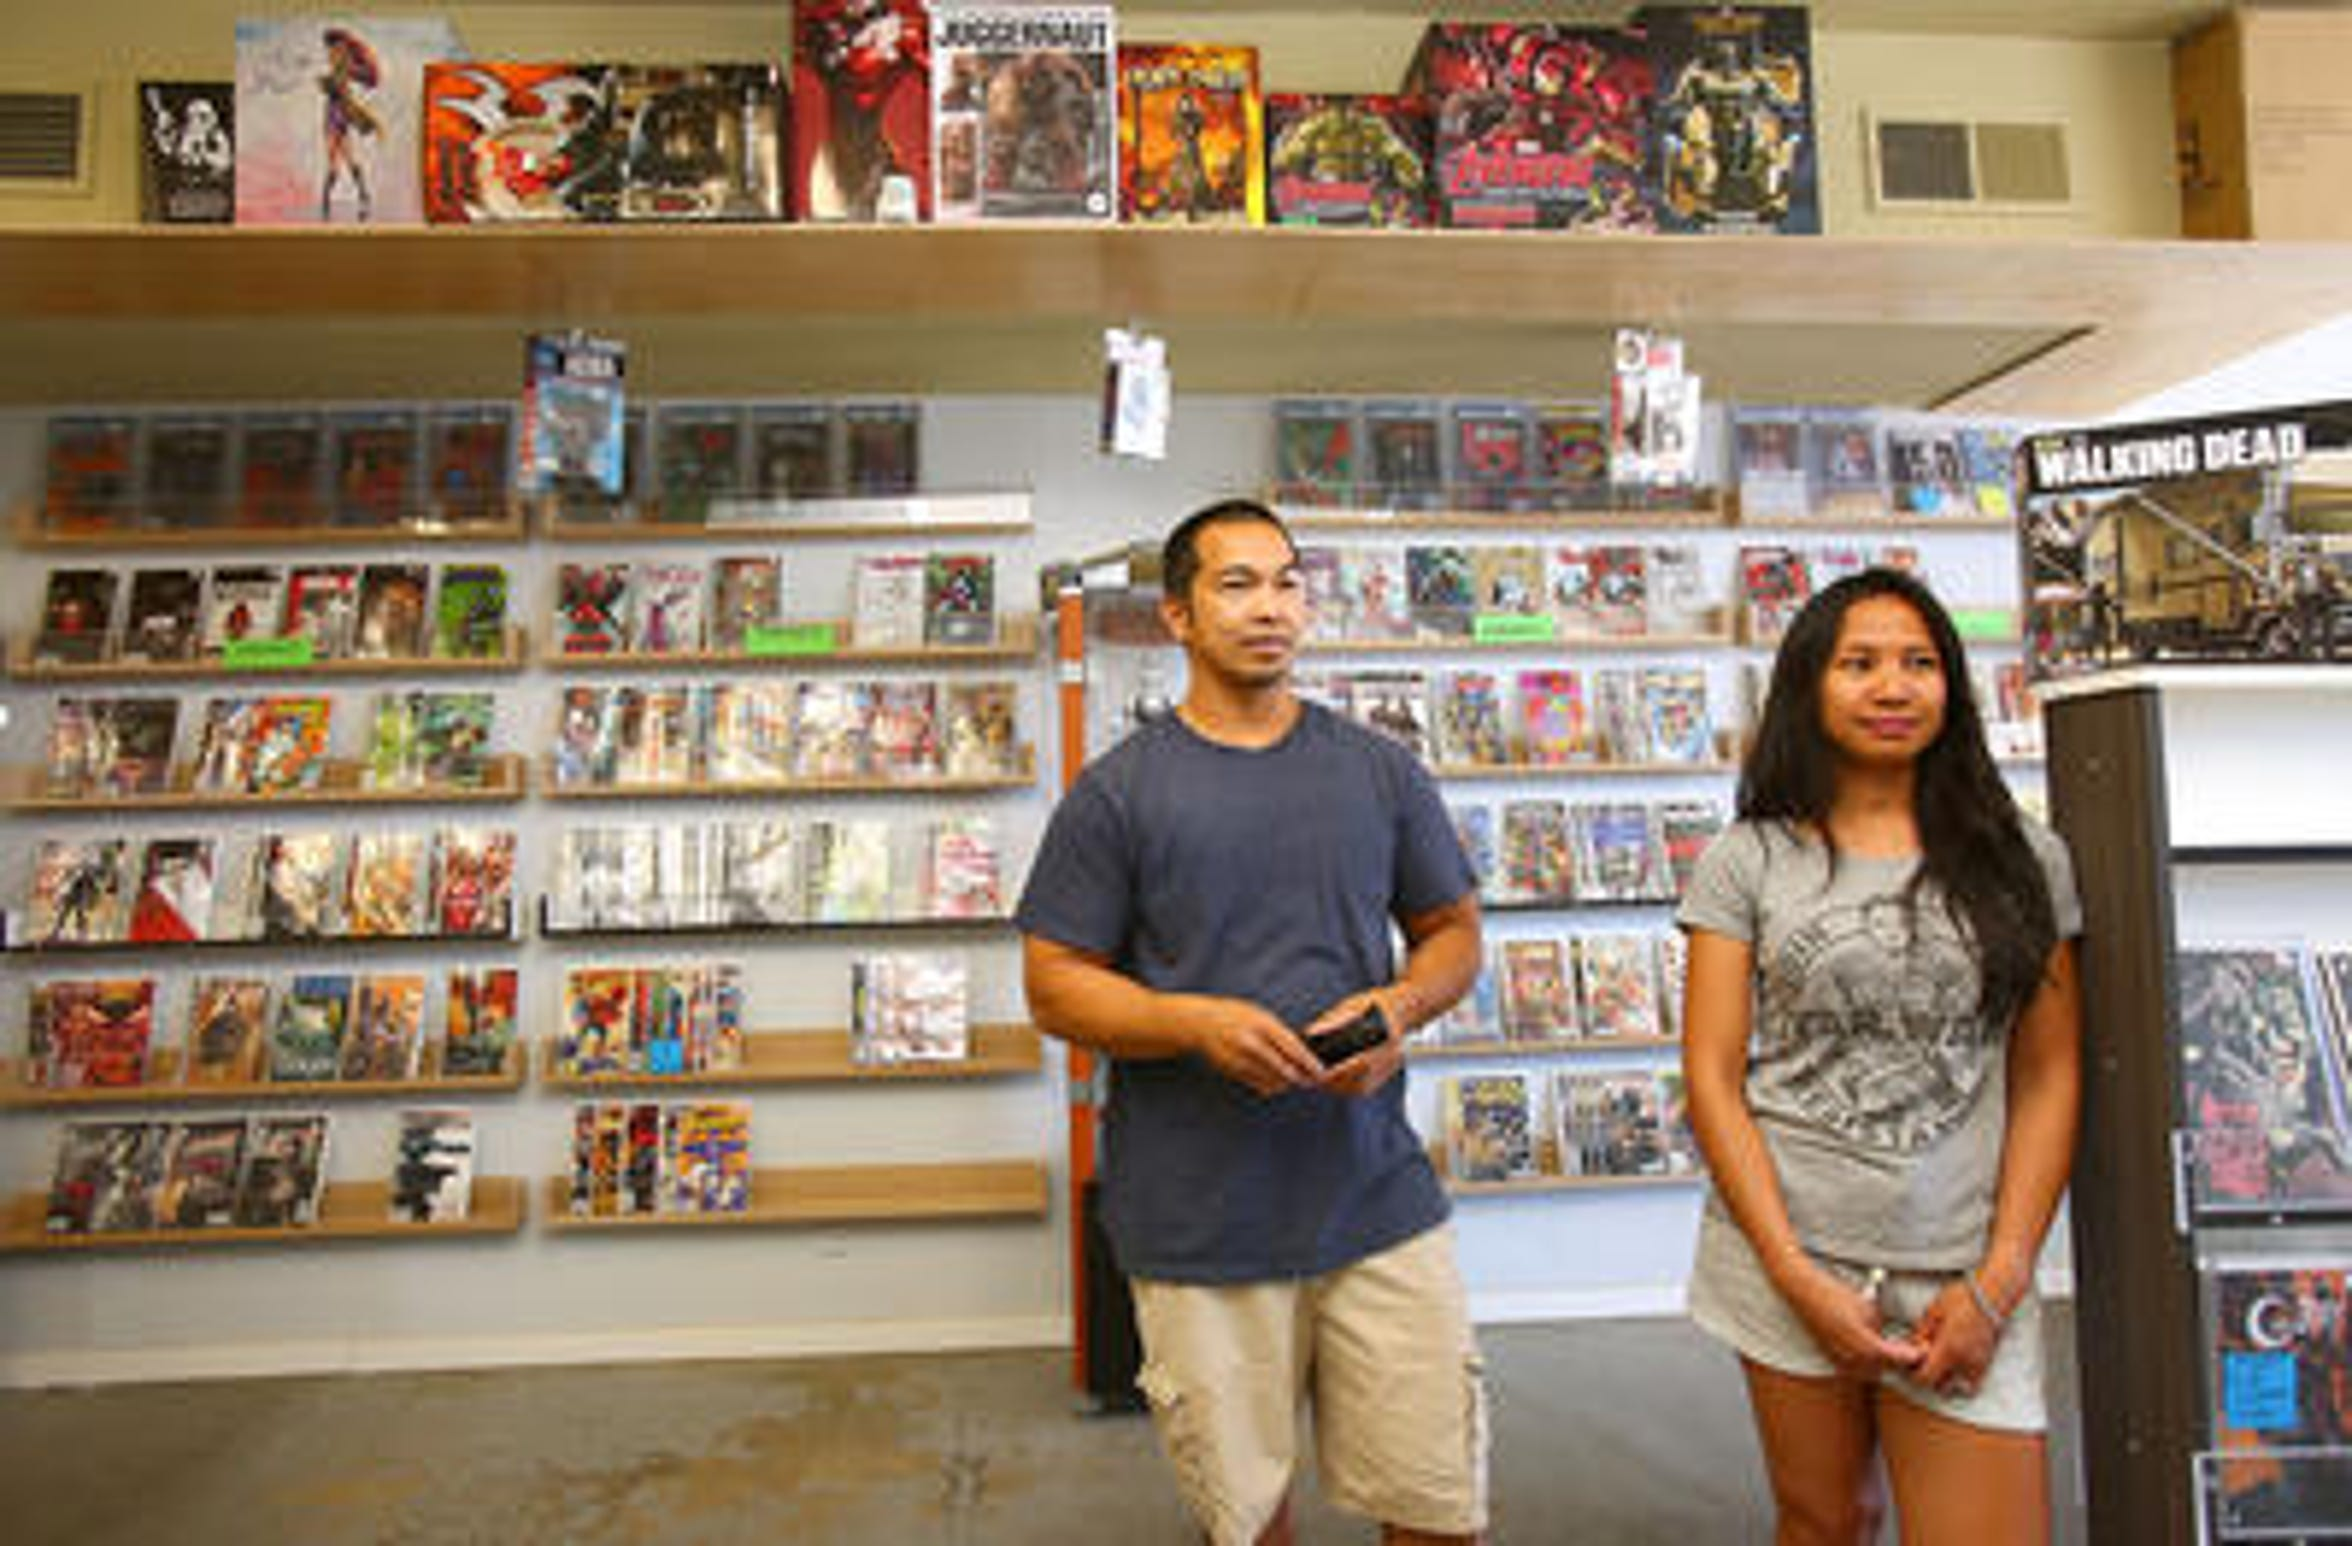 Big Q and Chicks Halay-Ay opened Comic Asylum at 44-829 San Pablo Ave., Palm Desert, about four years ago knowing of the city's plan to reconstruct the street in front of their business. Construction is costing them business, she said recently, but they believe the end result will be worth their patience.